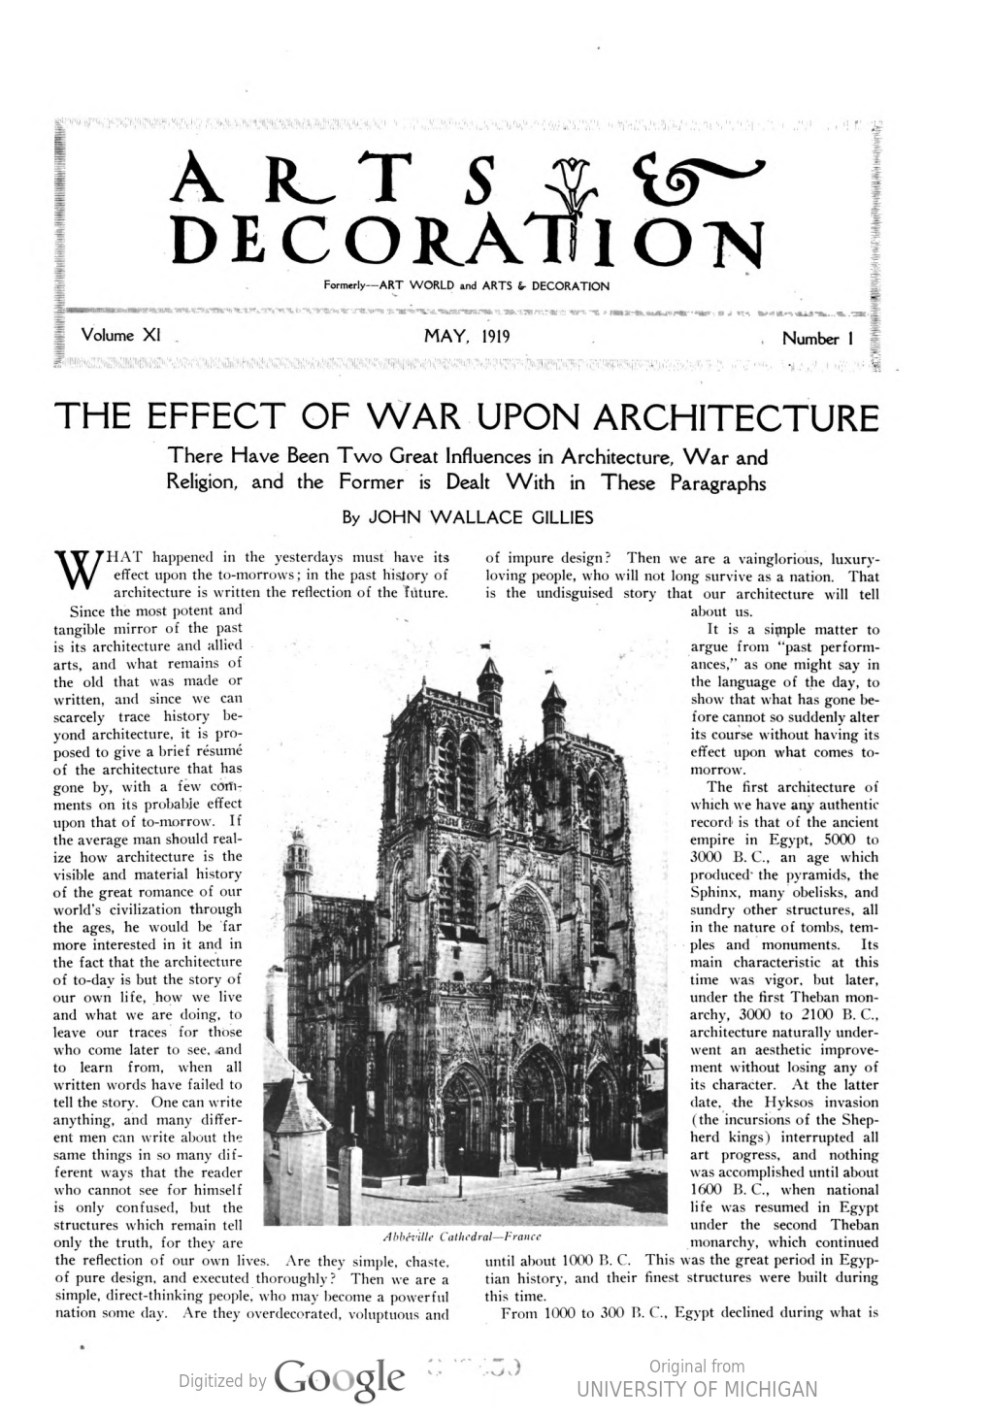 "Arts and Decoration, New York, NY, ""Exhibitions in the new york galleries"" by Peyton Boswell, May, 1919, Volume 11, Number 1, page 36, not illustrated"